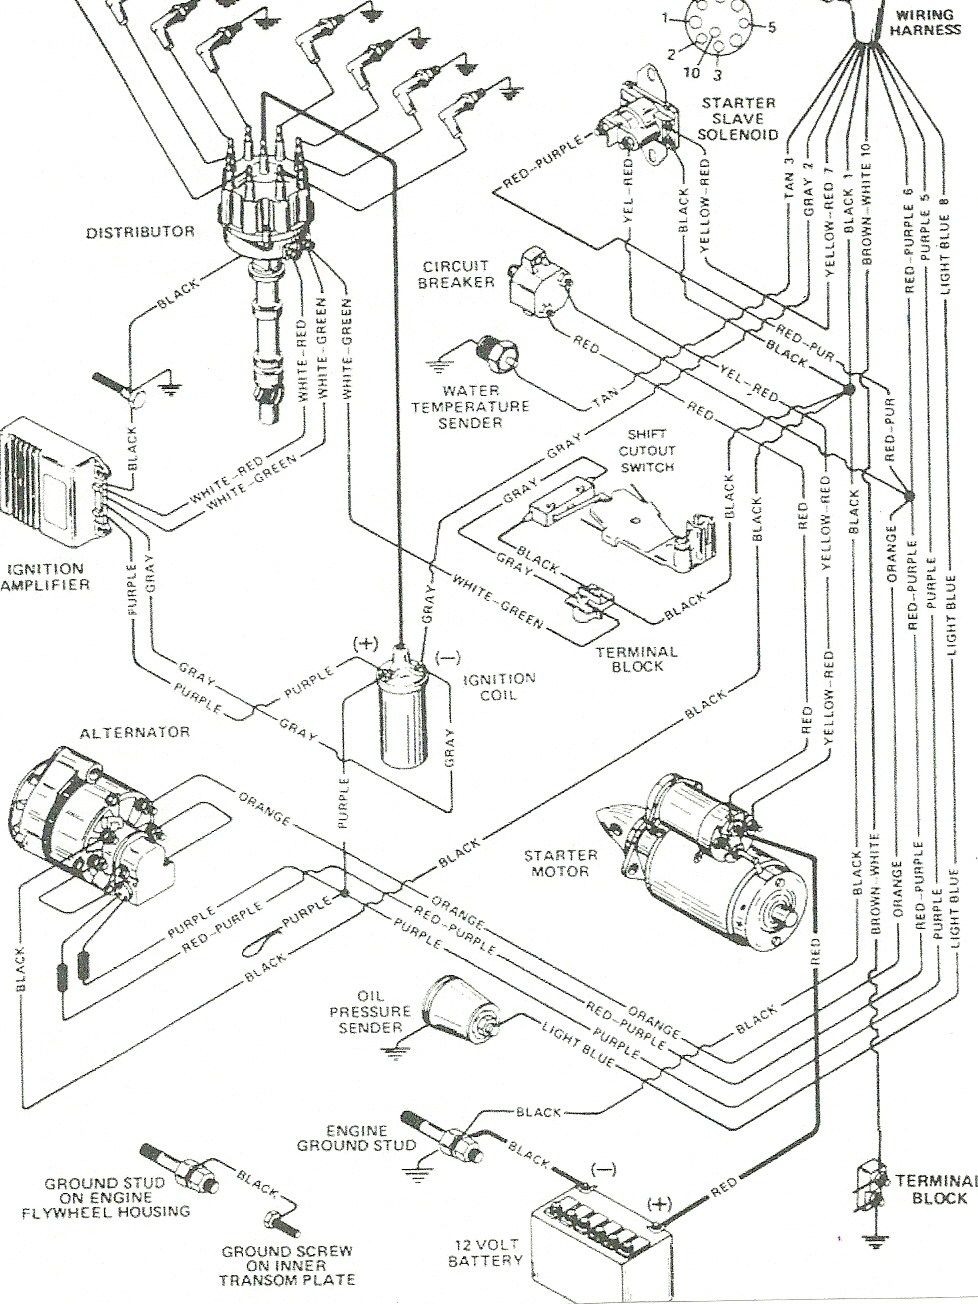 mercruiser 30 wiring diagram, Wiring diagram Diagram